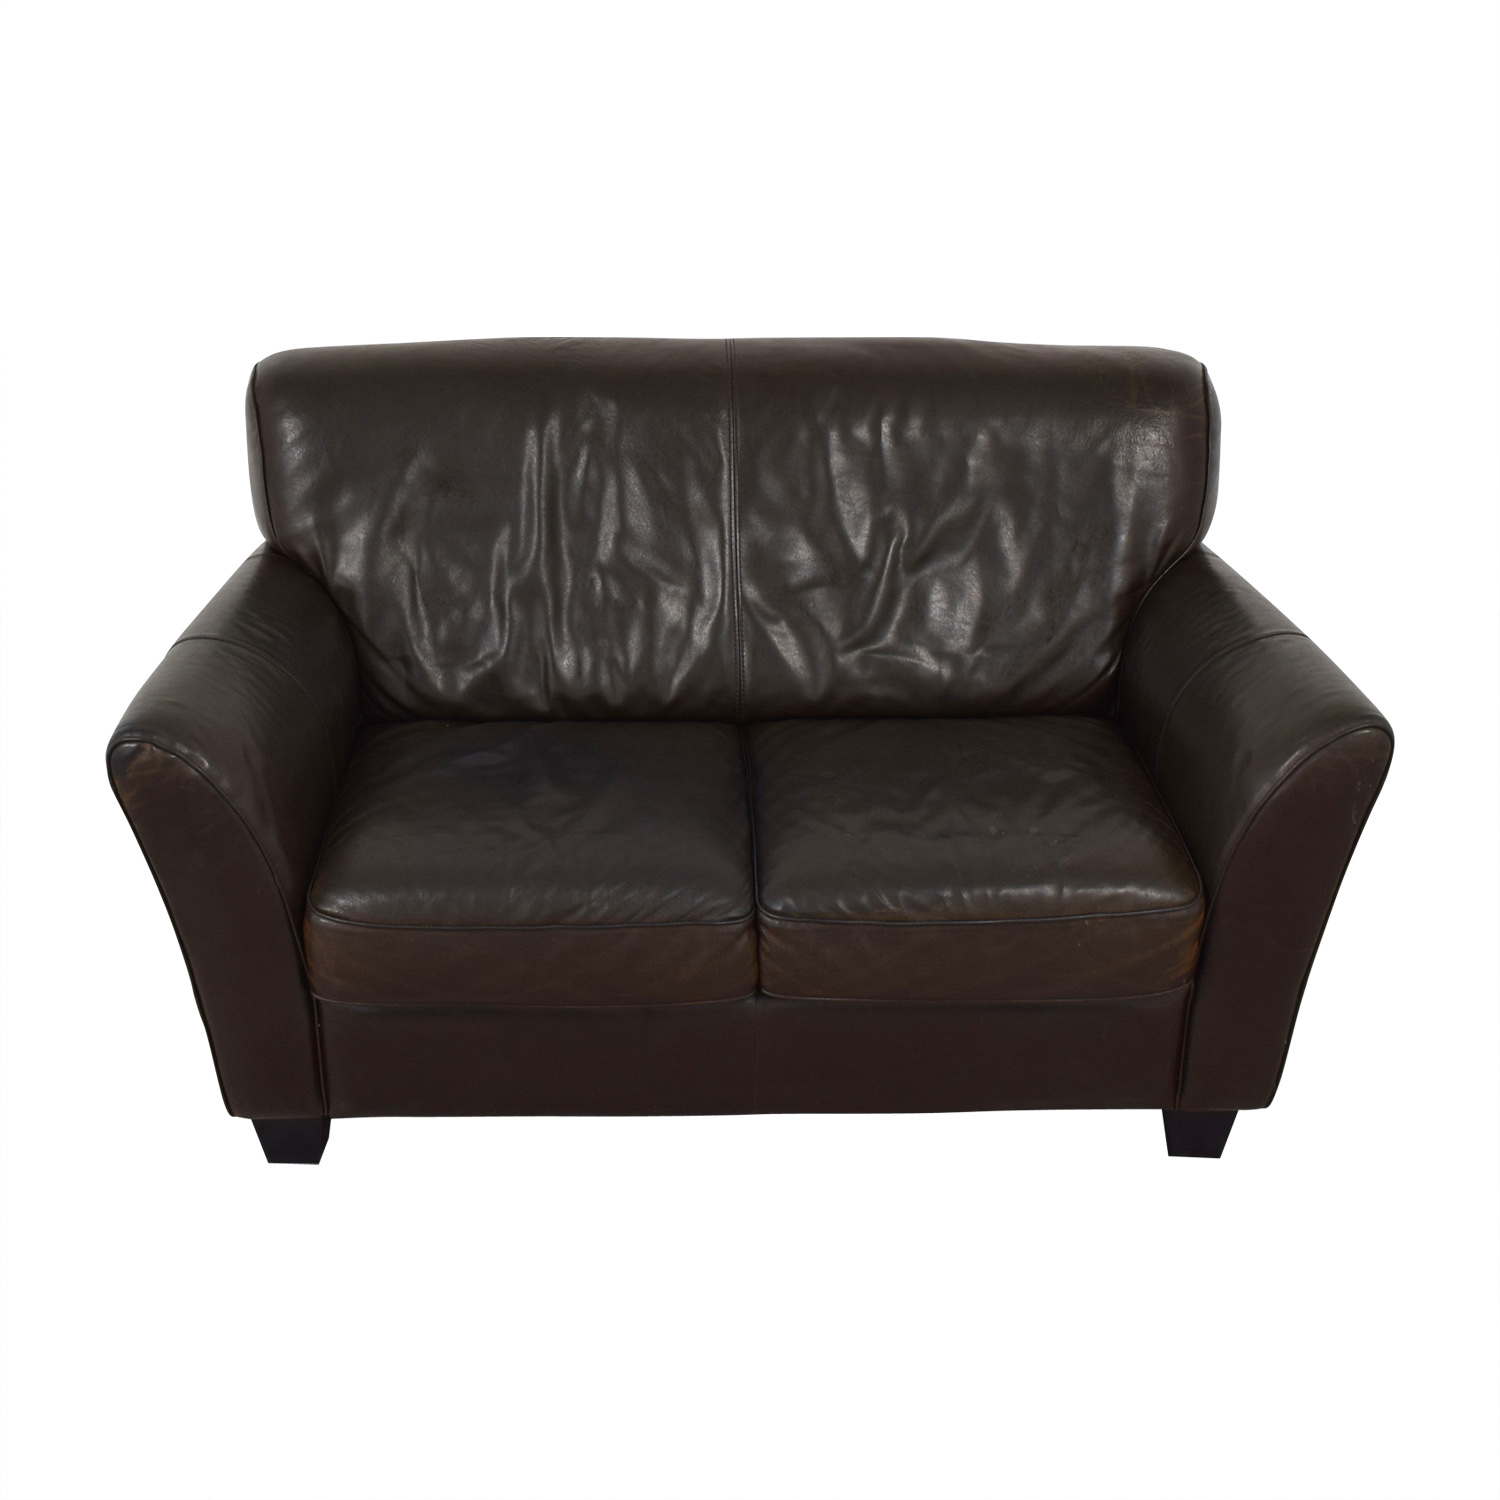 buy Natuzzi Brown Two-Cushion Couch Natuzzi